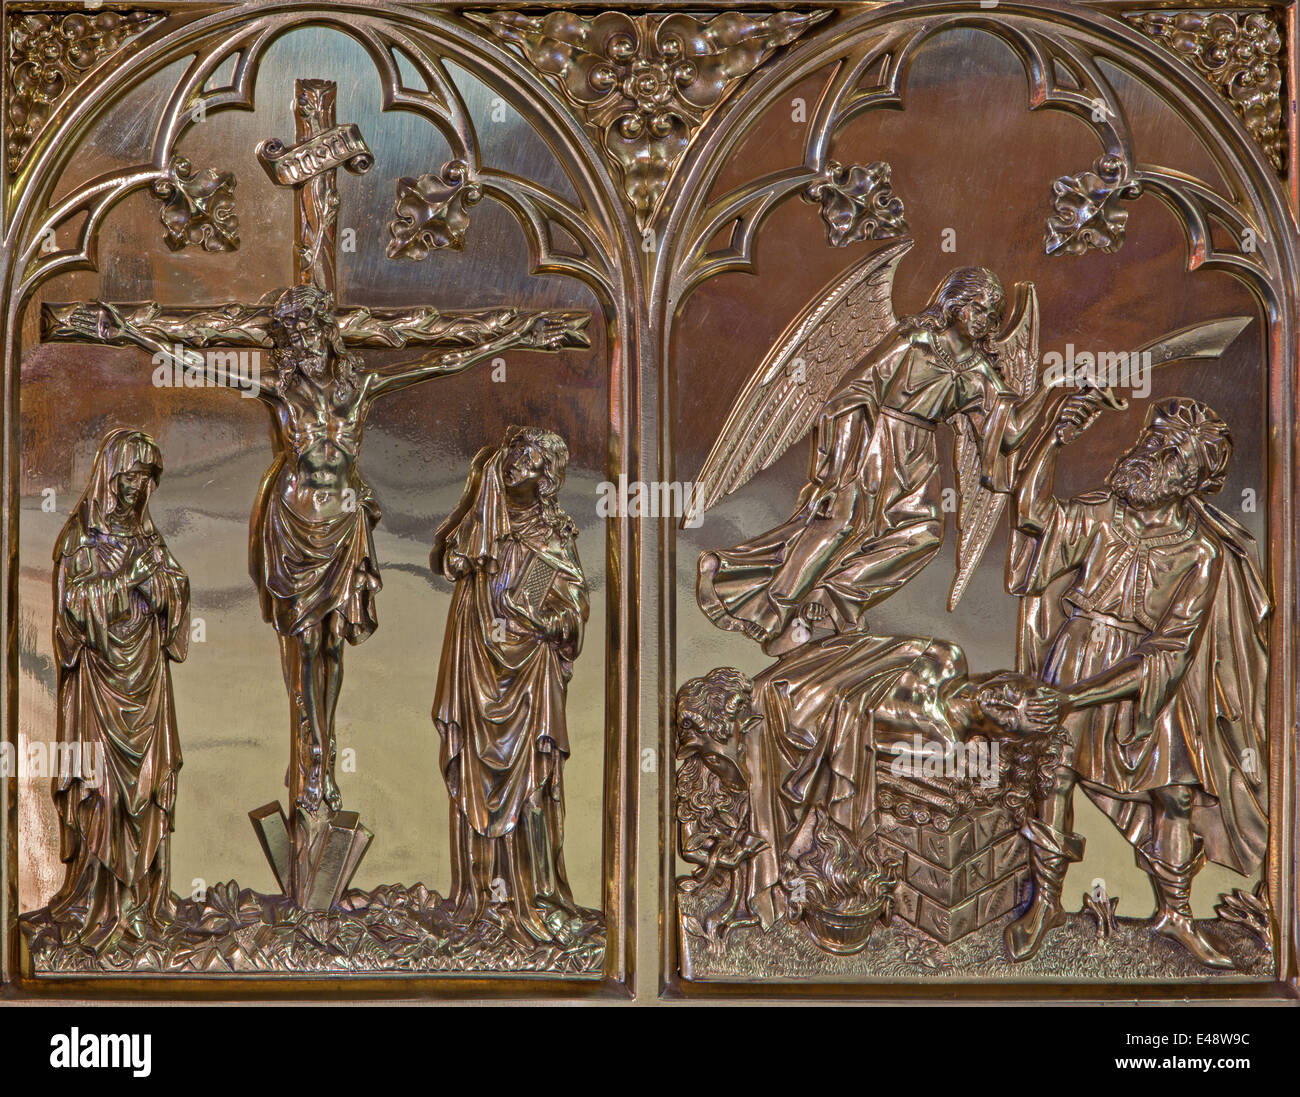 BRUGGE, BELGIUM - JUNE 13, 2014: The Crucifixion and the Offer of Abraham neogothic metal relief in st. Giles (Sint - Stock Image